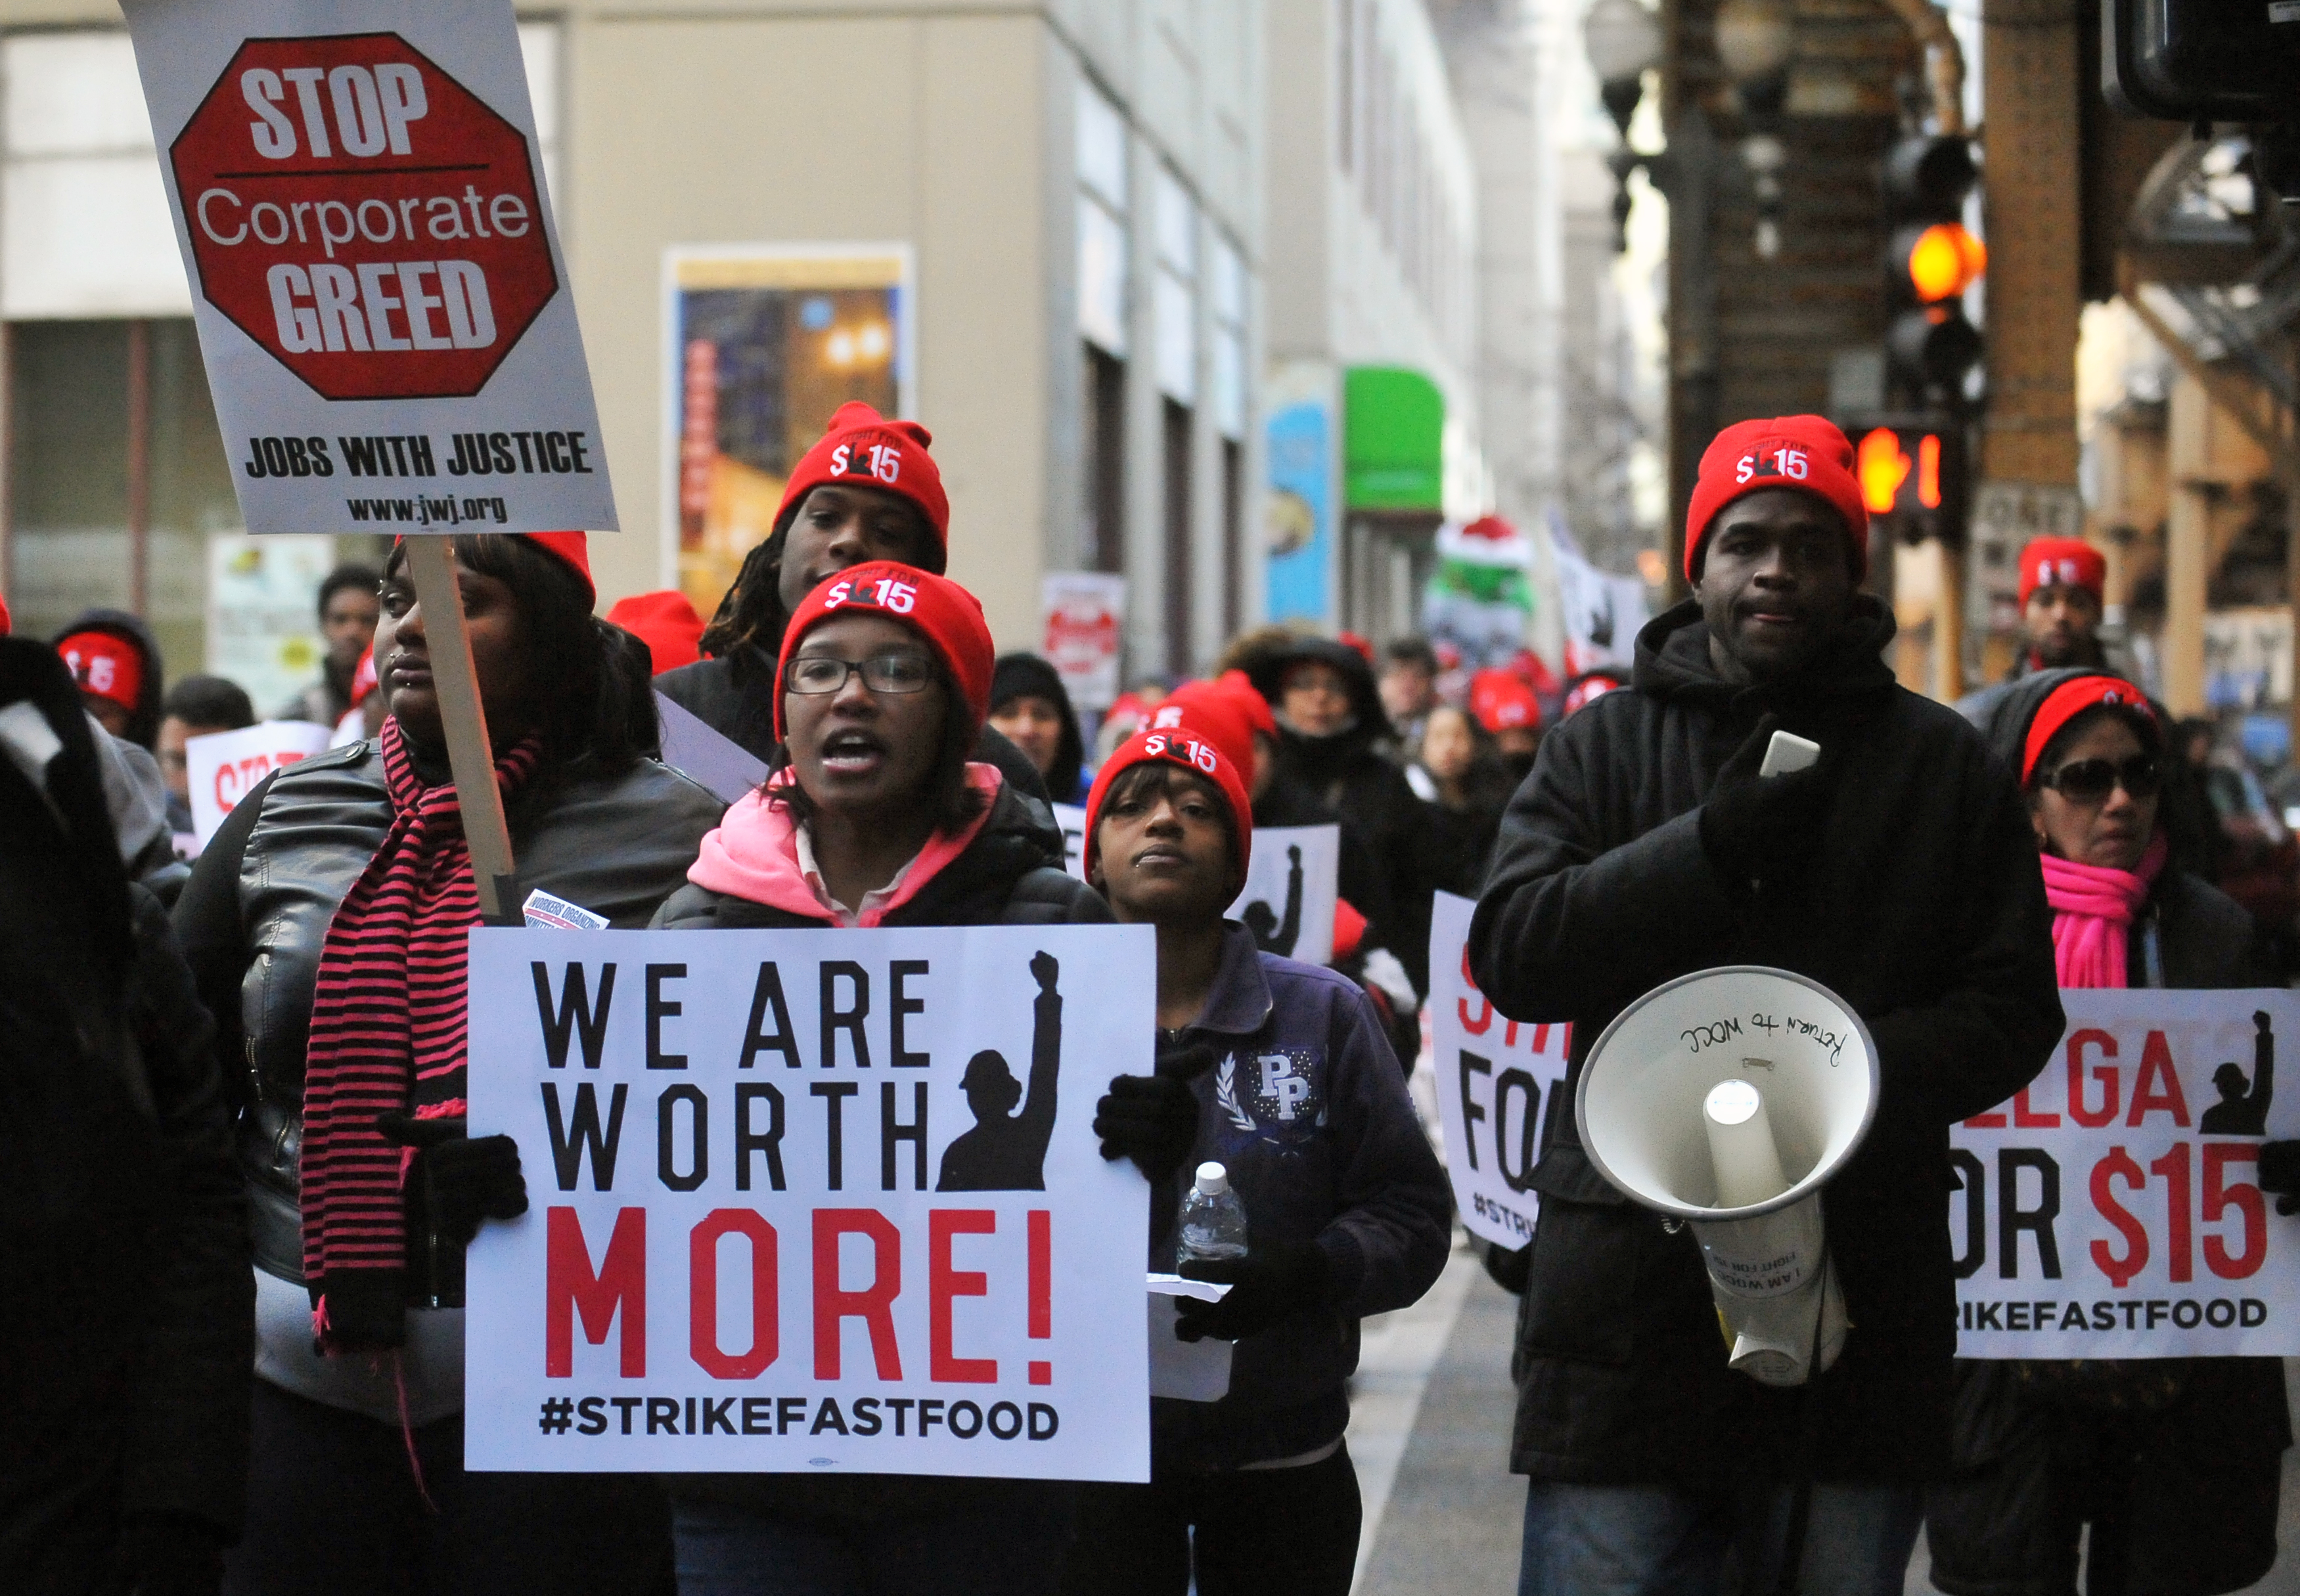 Protesters seeking a higher minimum wage demonstrated in front of a McDonald's restaurant in downtown Chicago in 2014.